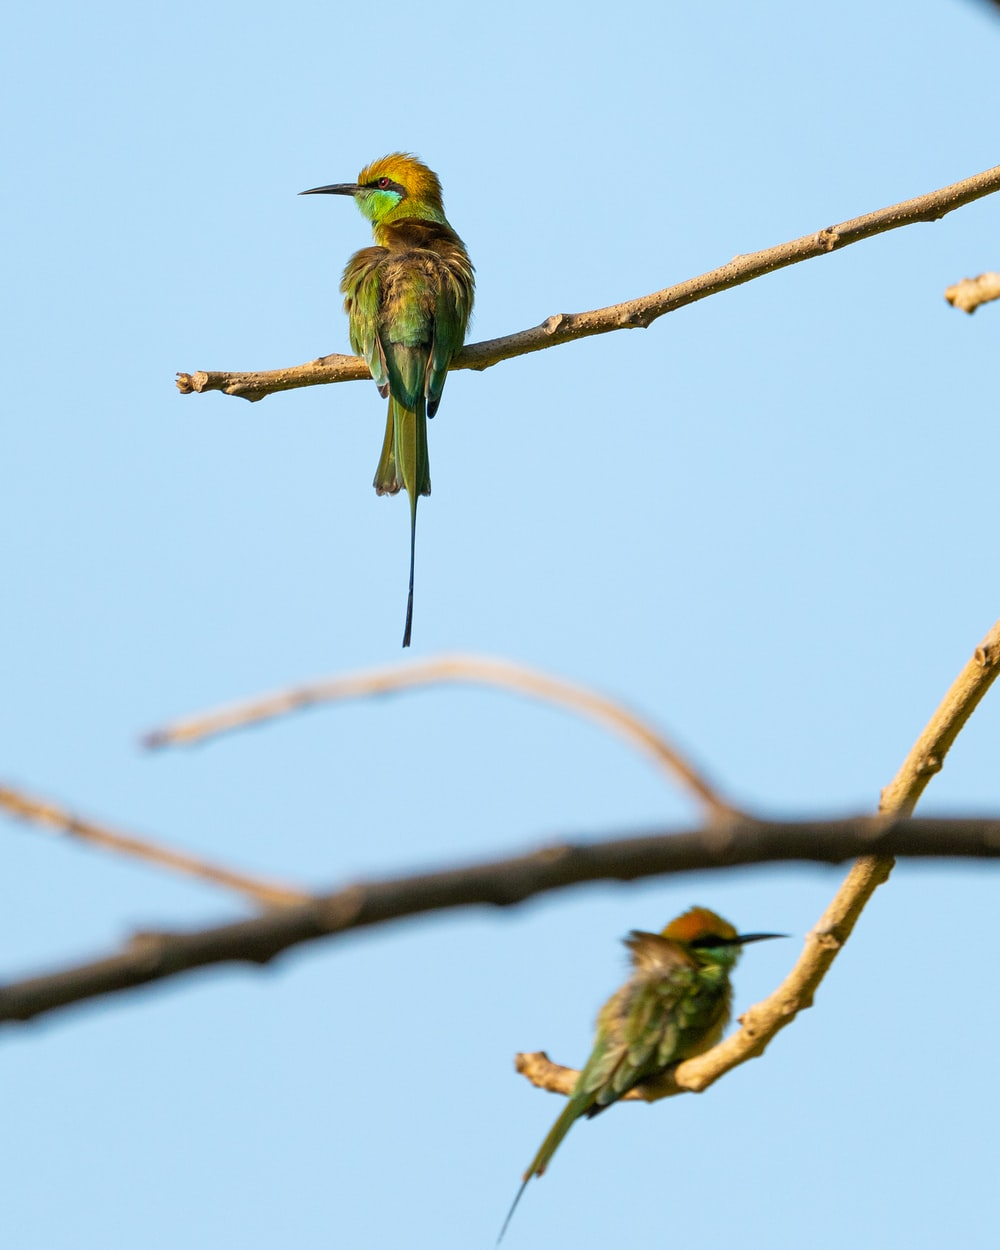 green and yellow bird on brown tree branch during daytime